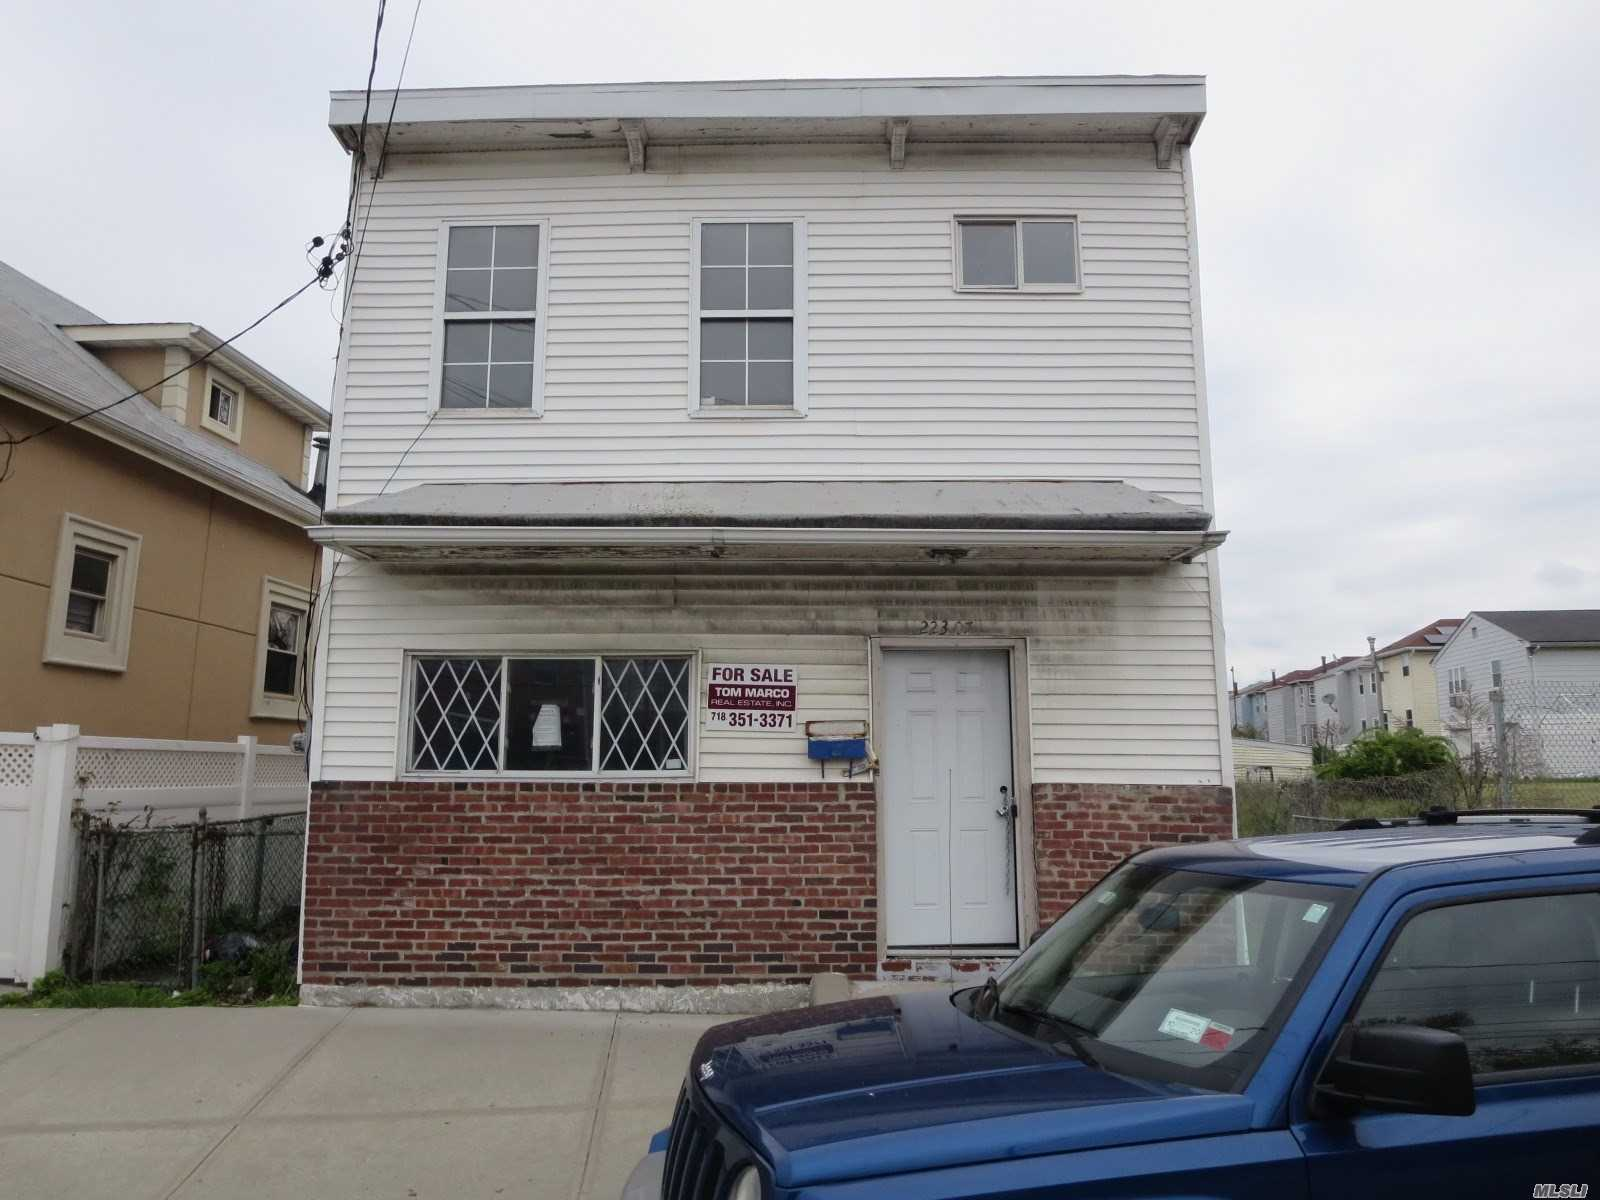 Fully detached one family property in need of some TLC, sitting on a 30x103 lot this property offers living, dining, eat-in kitchen three bedrooms and full bath. Extra-large rear yard, located close to shopping, transportation and many schools.